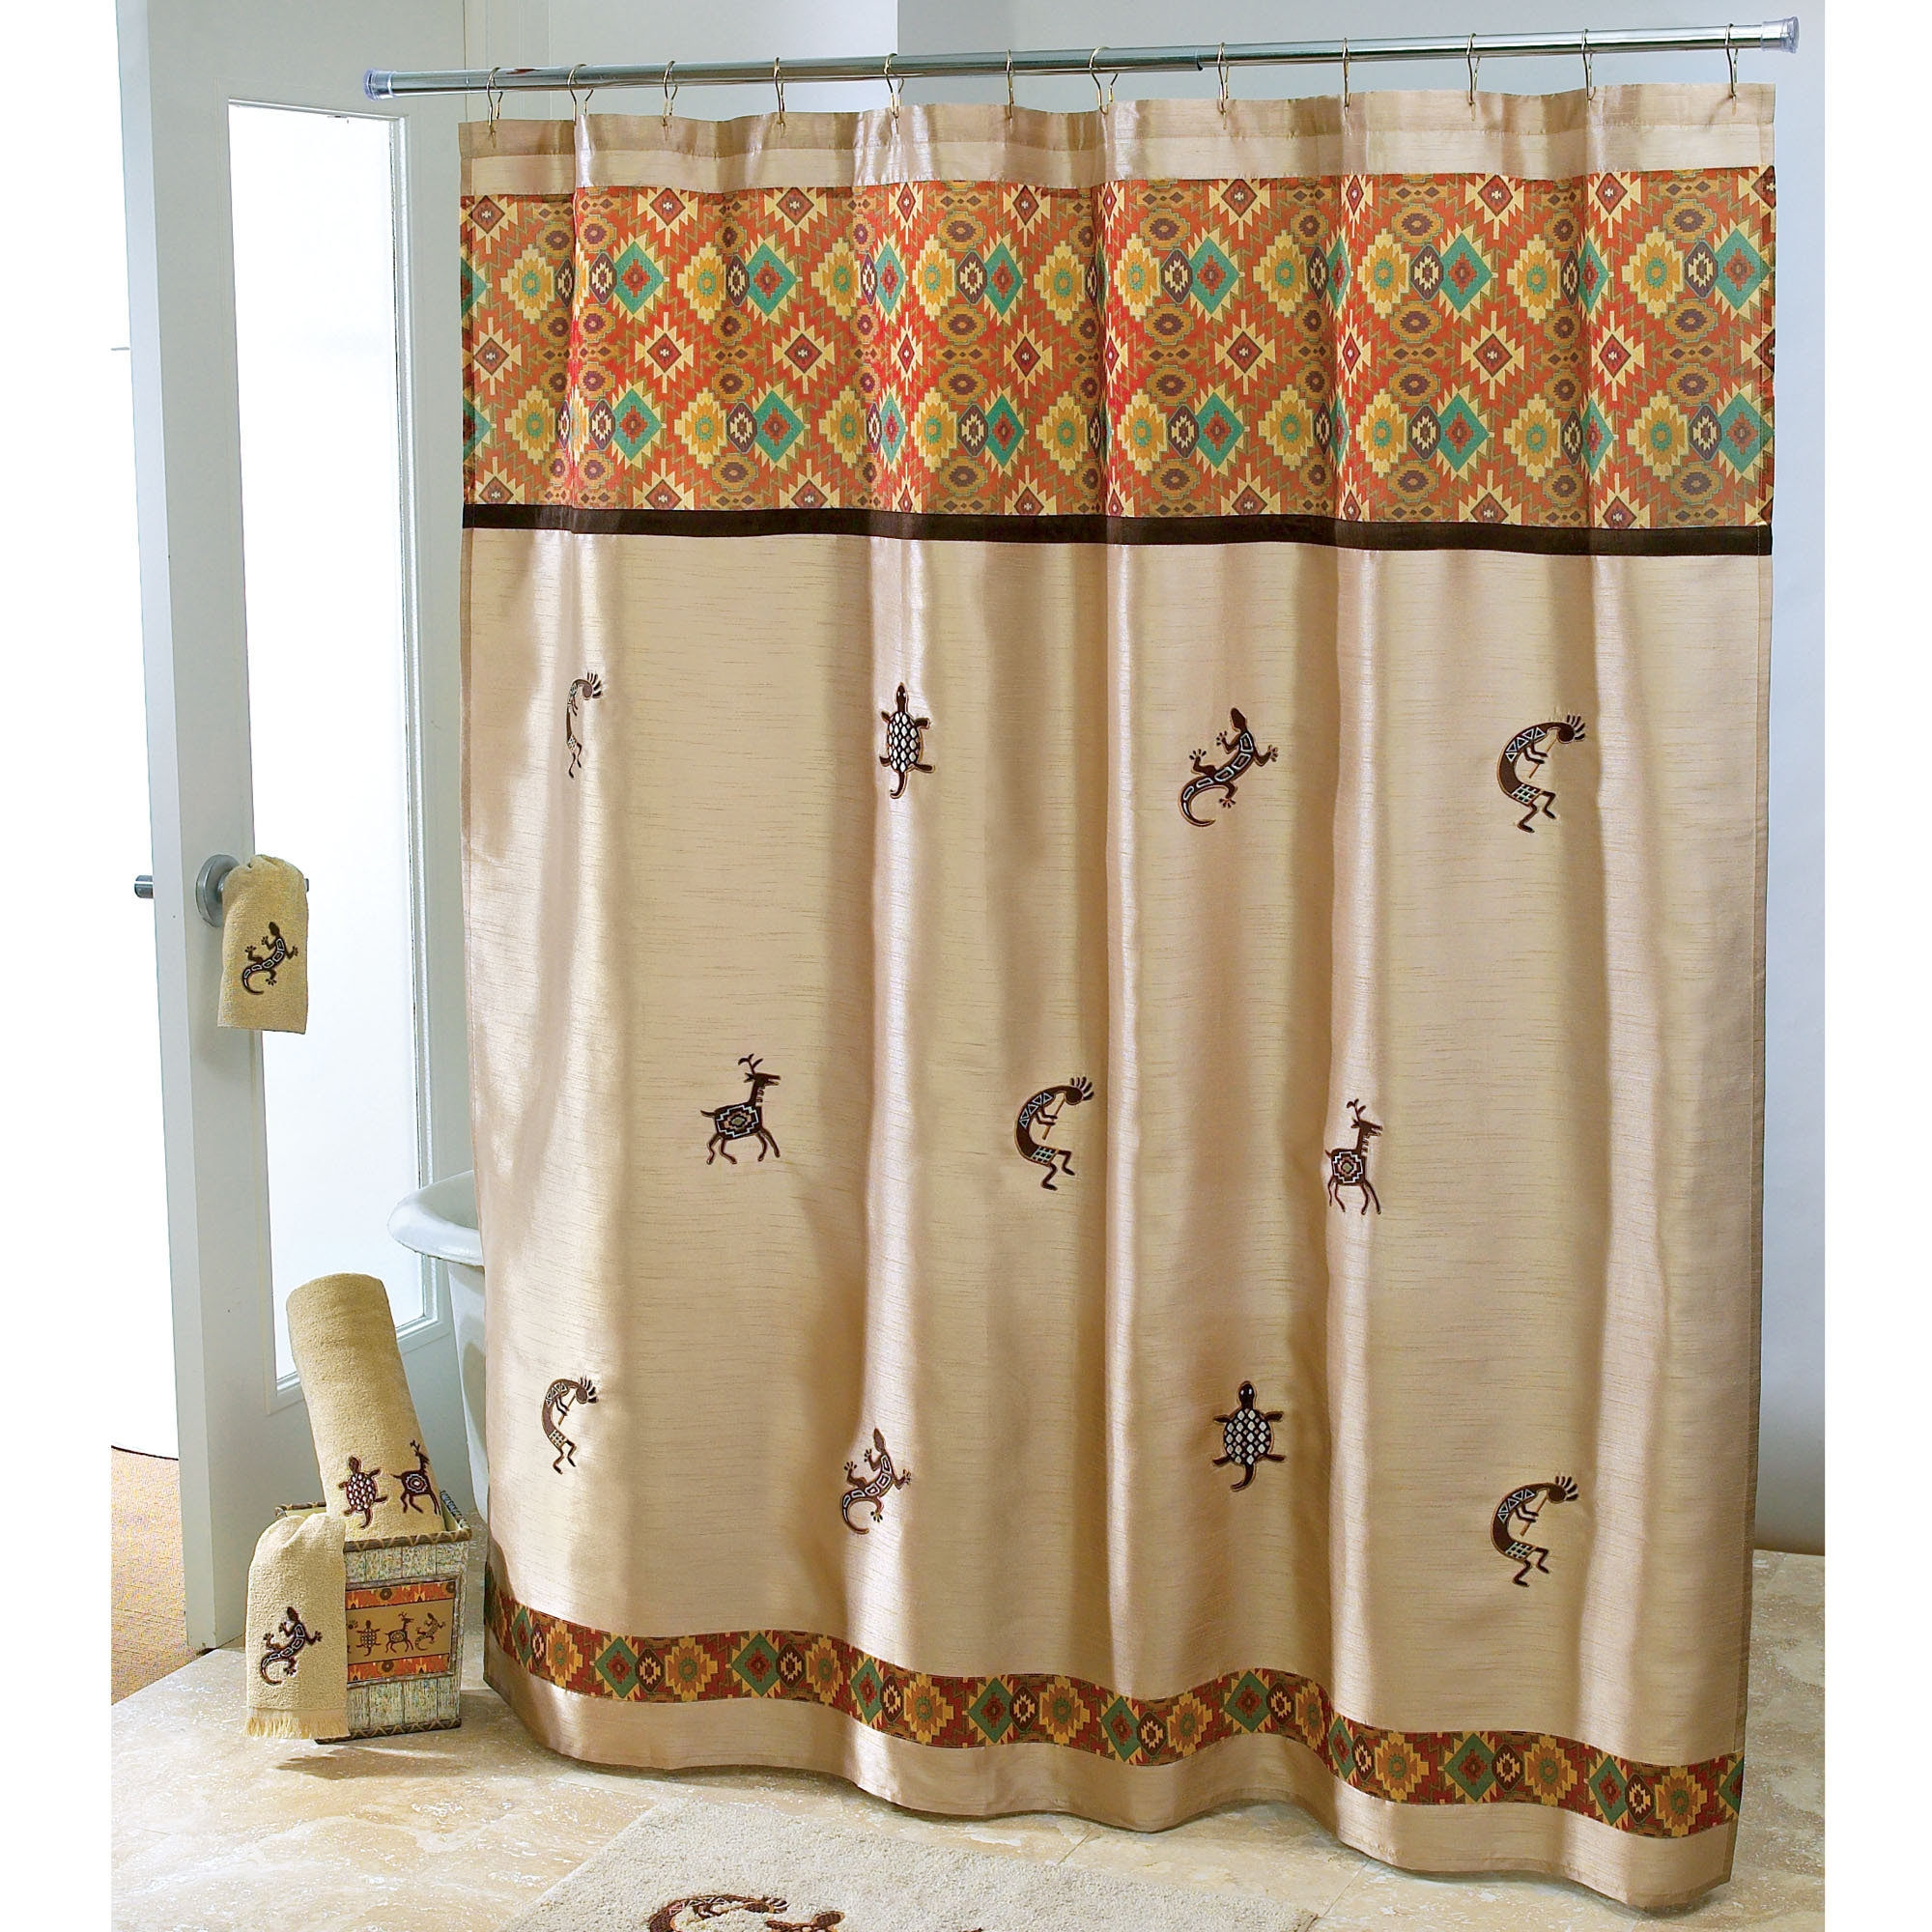 Southwest Shower Curtain Curtain Ideas regarding measurements 2000 X 2000